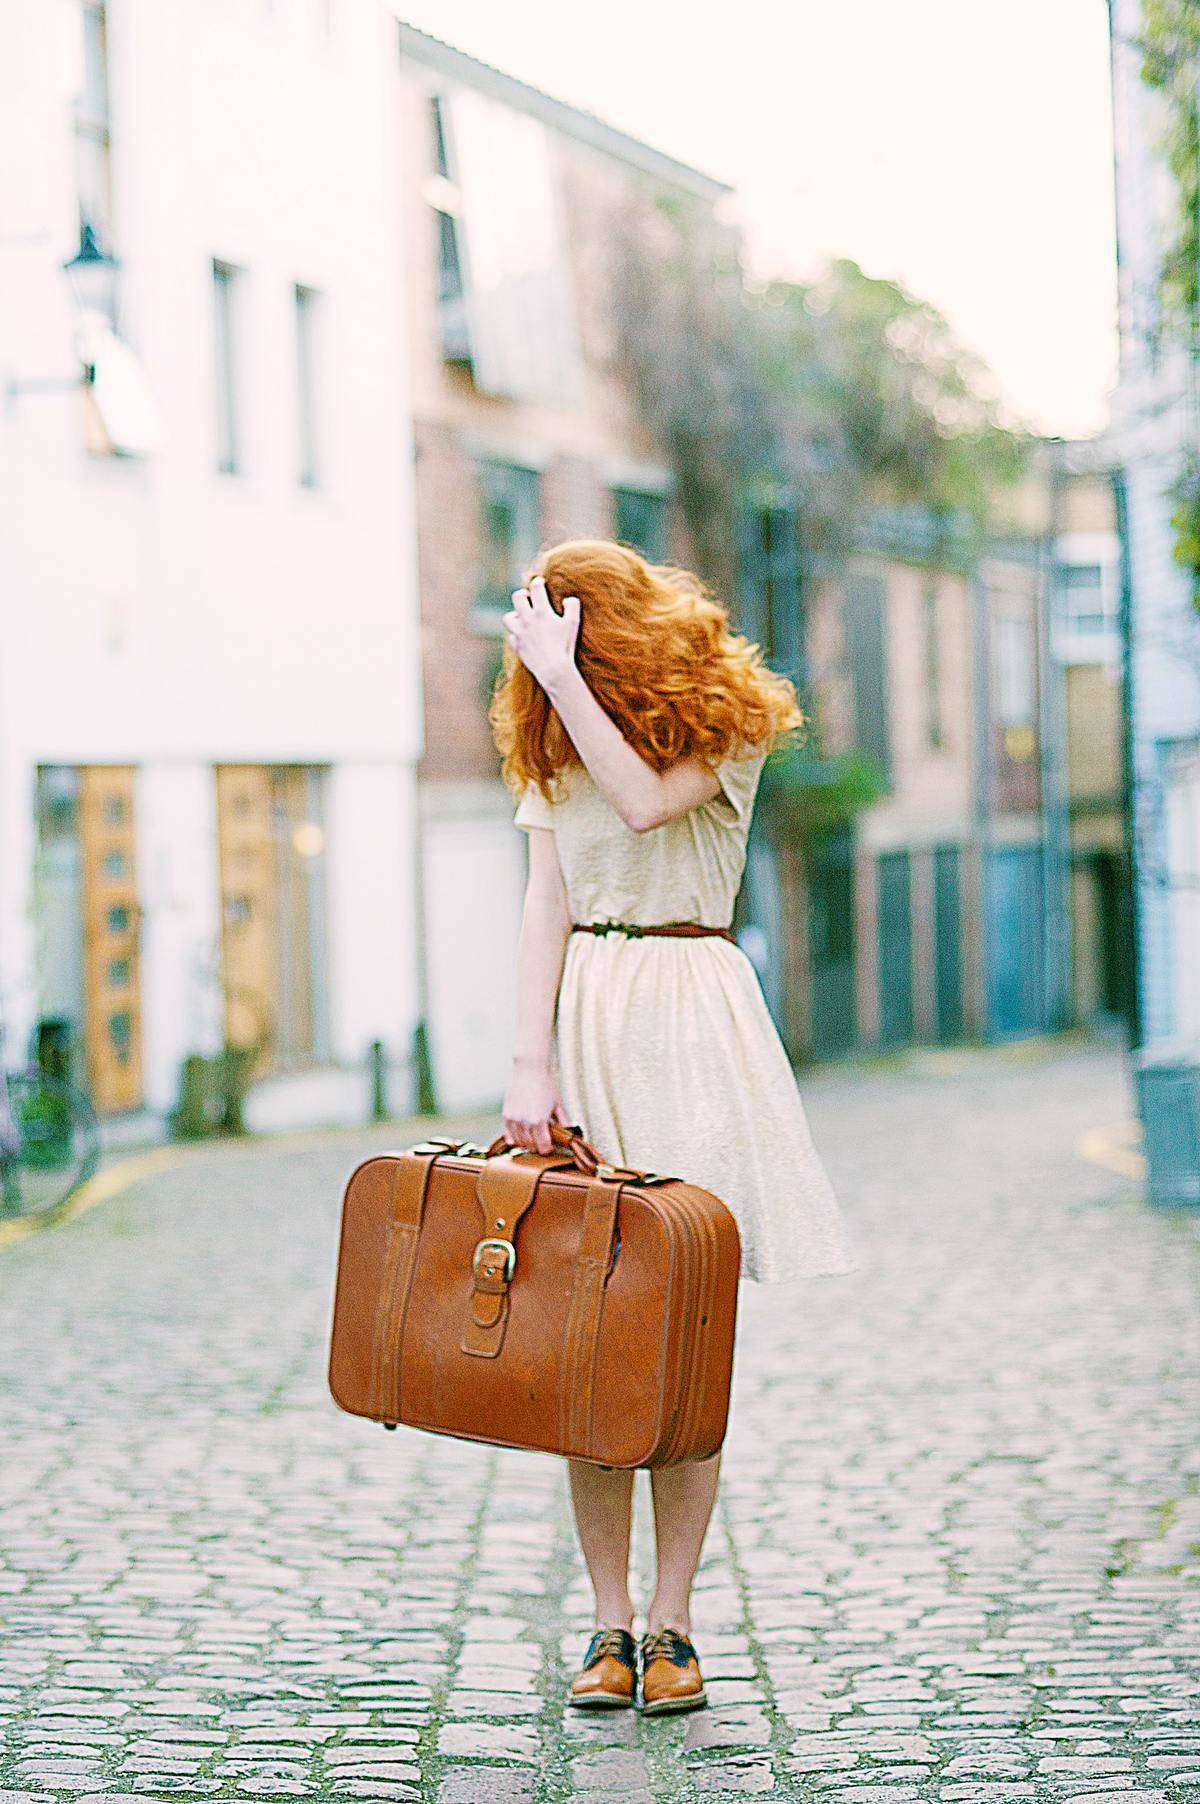 woman carrying luggage on pebble street